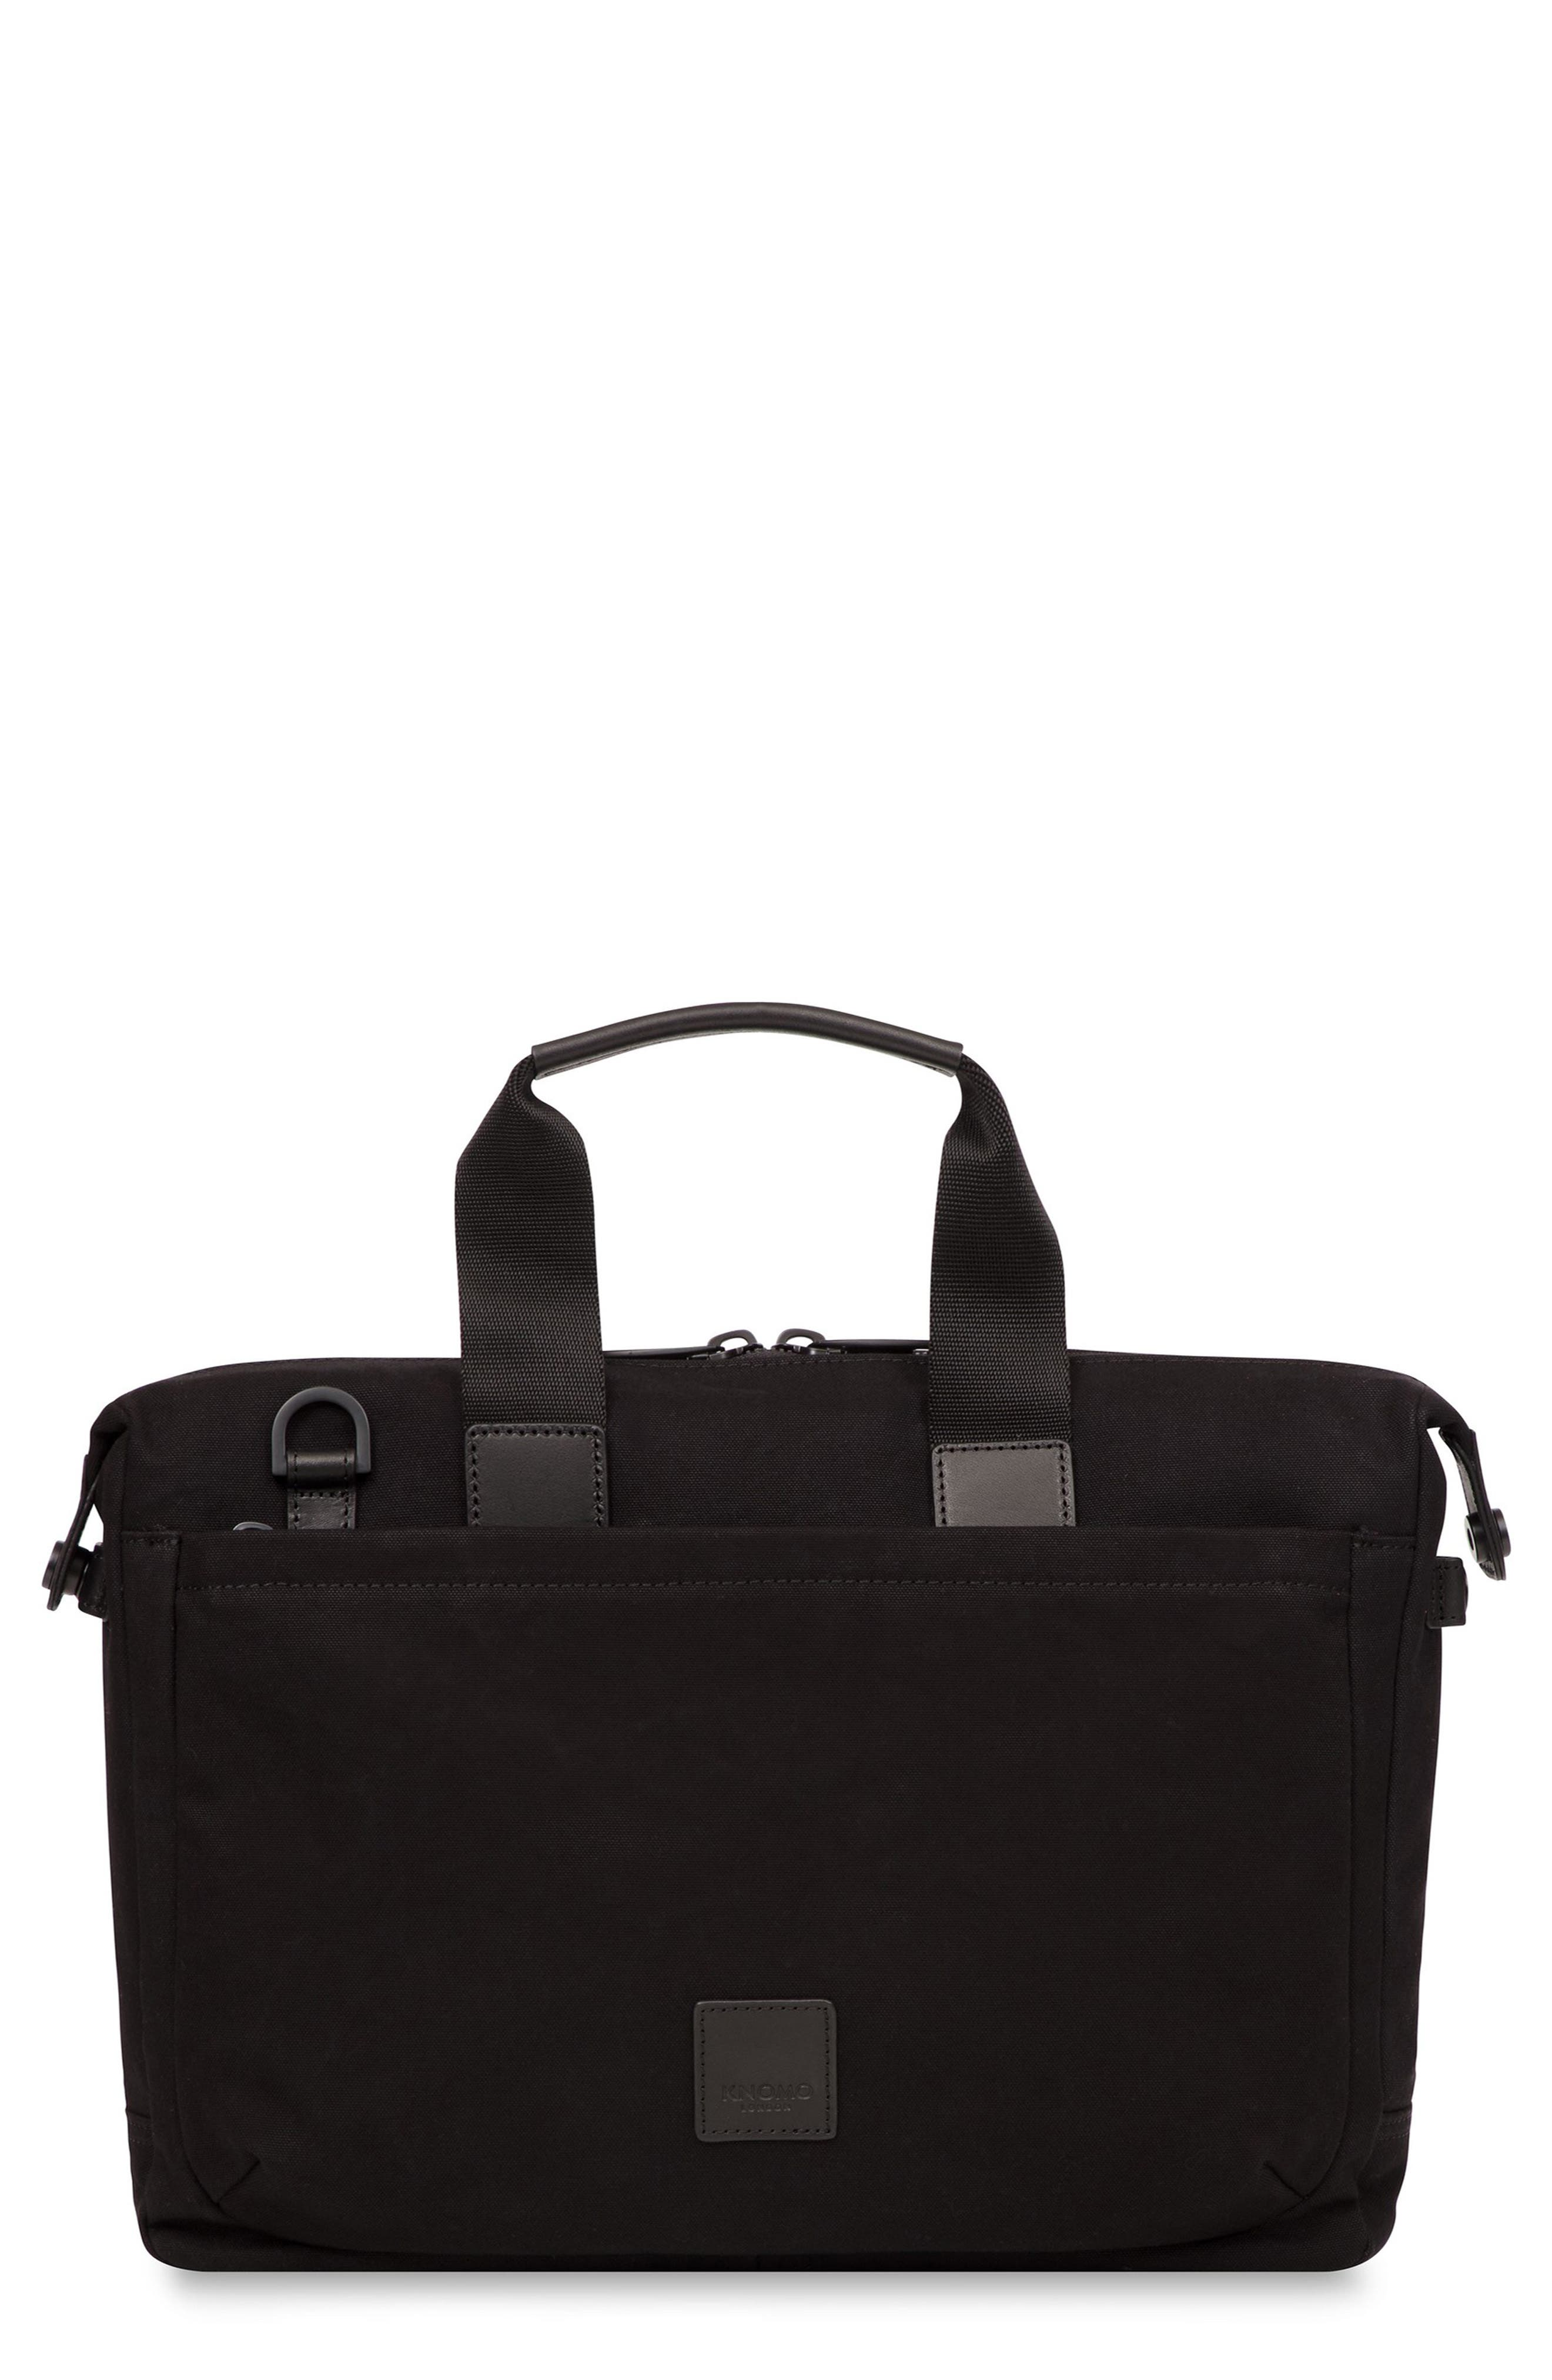 Fulham Blake Slim Briefcase,                             Main thumbnail 1, color,                             001